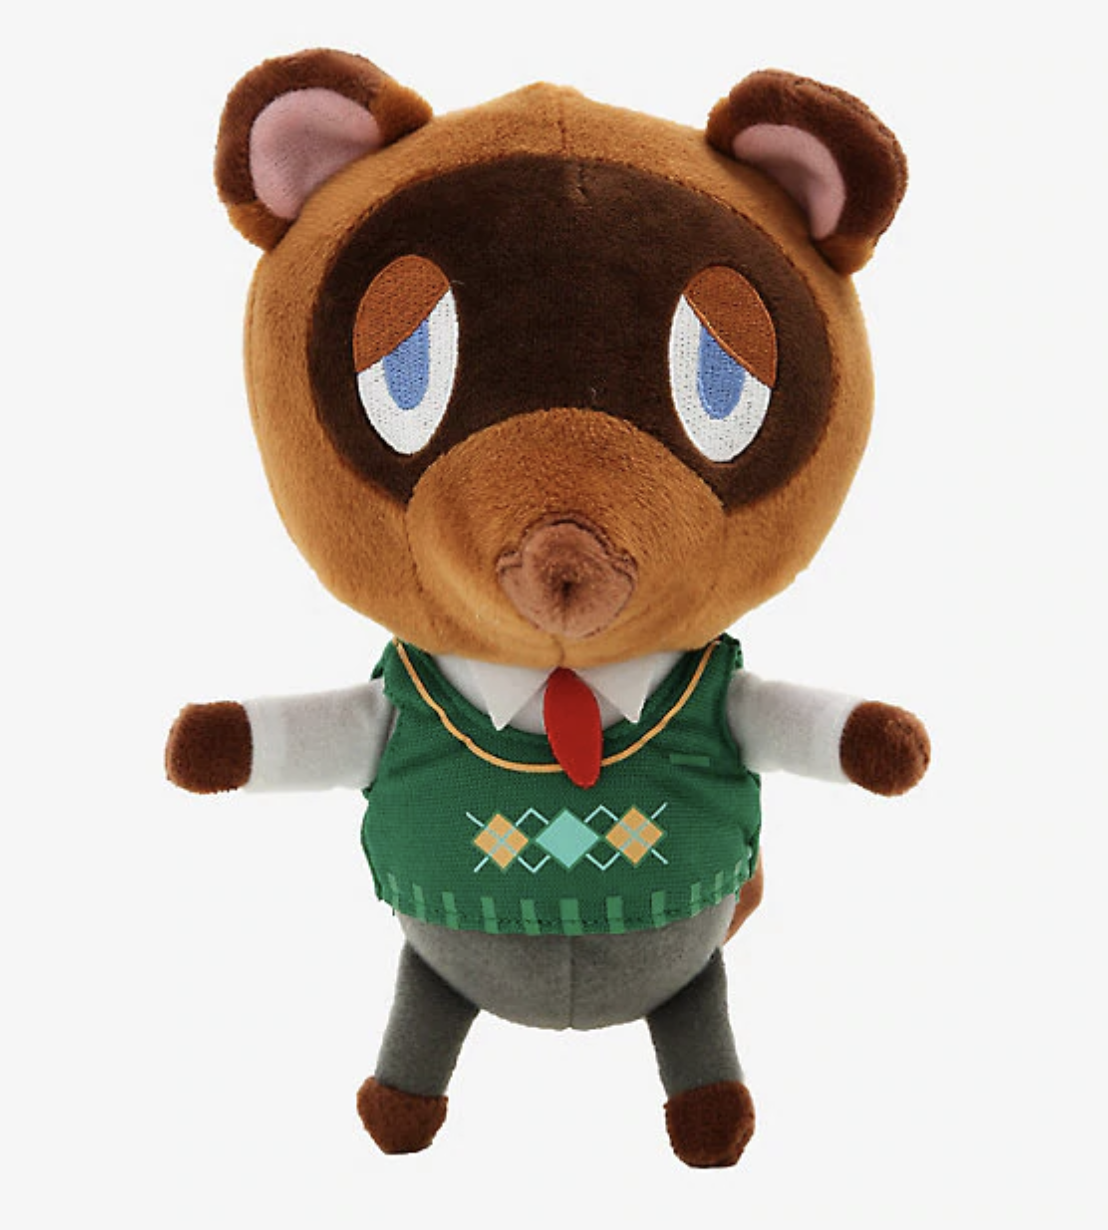 A plush of Tom Nook from ANimal crossing